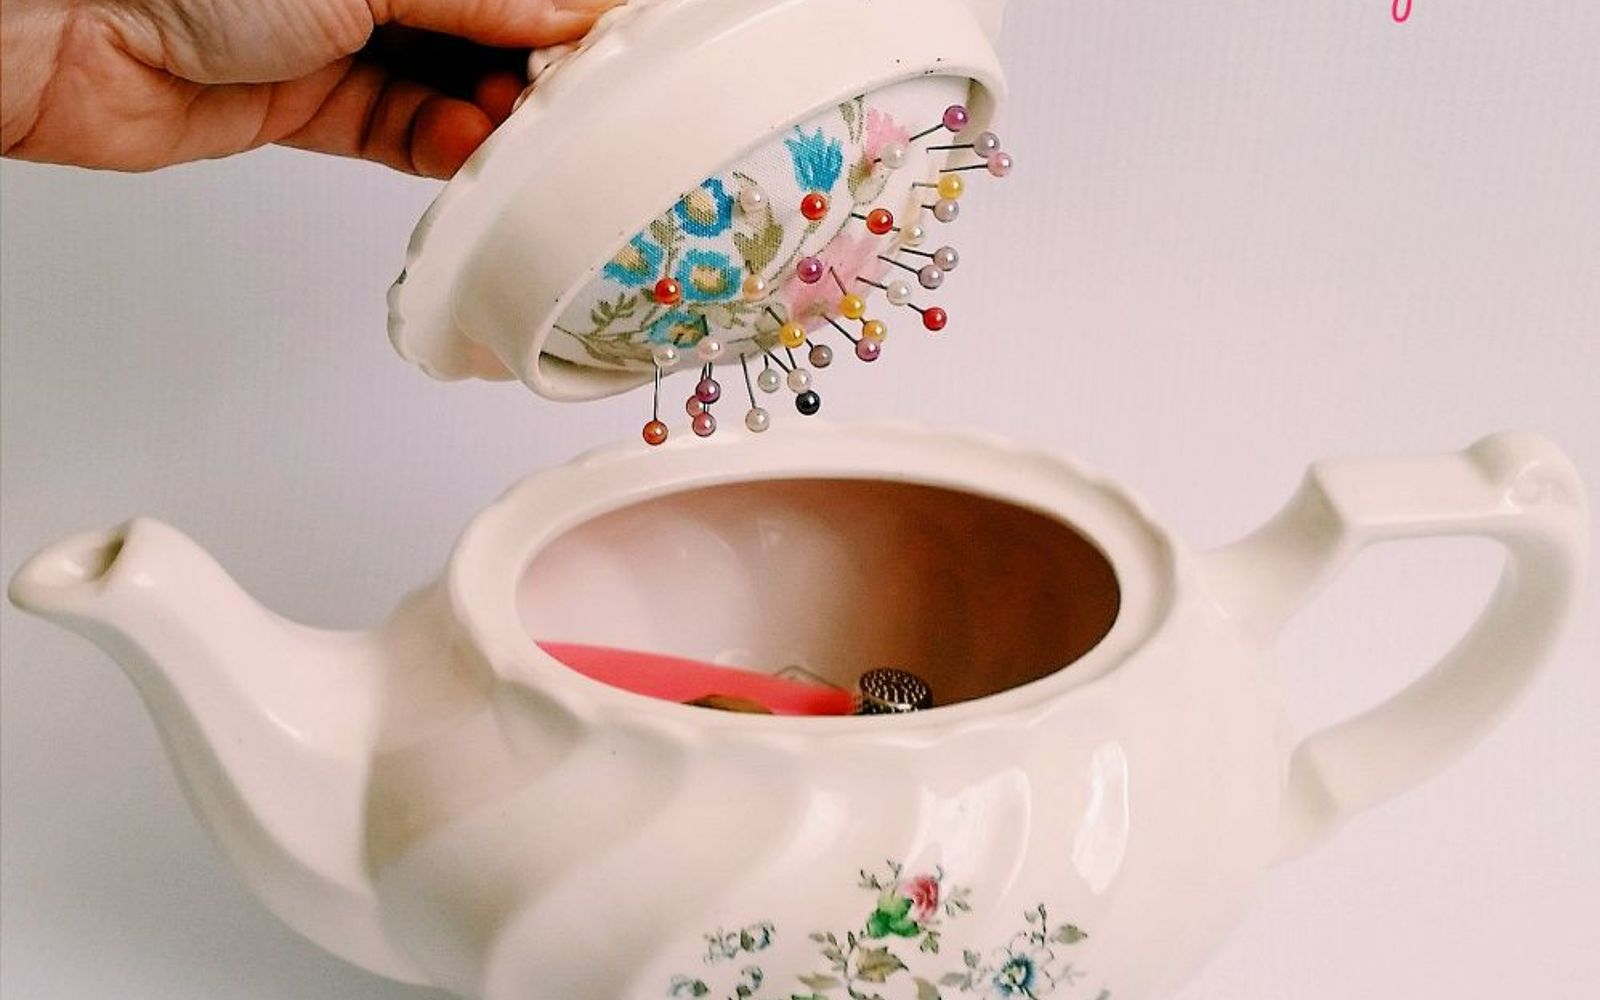 s don t ditch your broken teacups til you see what people do with them, repurposing upcycling, Hold on to broken teapots for a sewing caddy